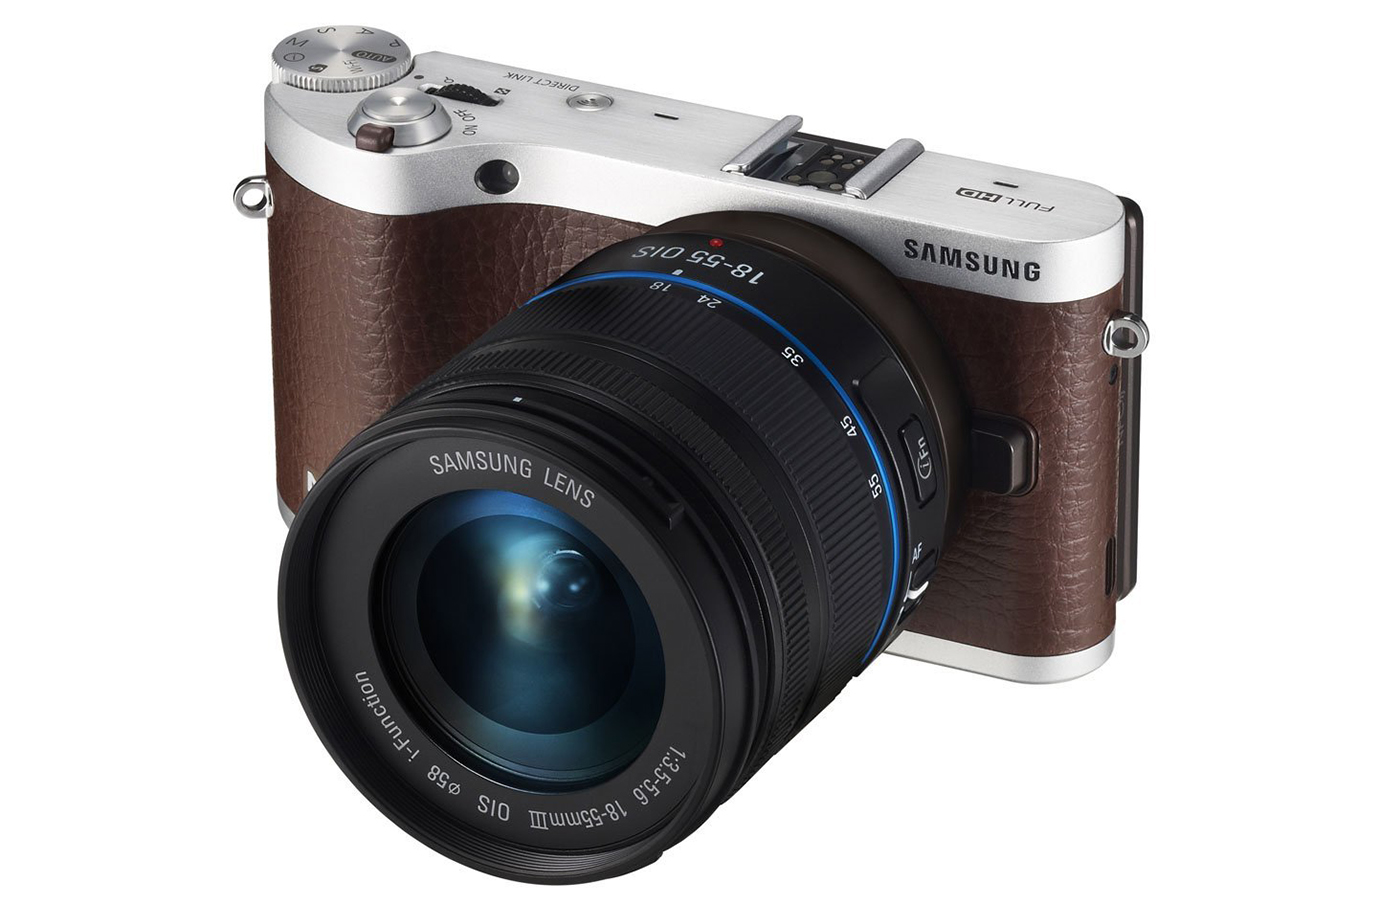 Getting Started with CSC: 6 Mirrorless Cameras Under $600, nx300 Cameraplex